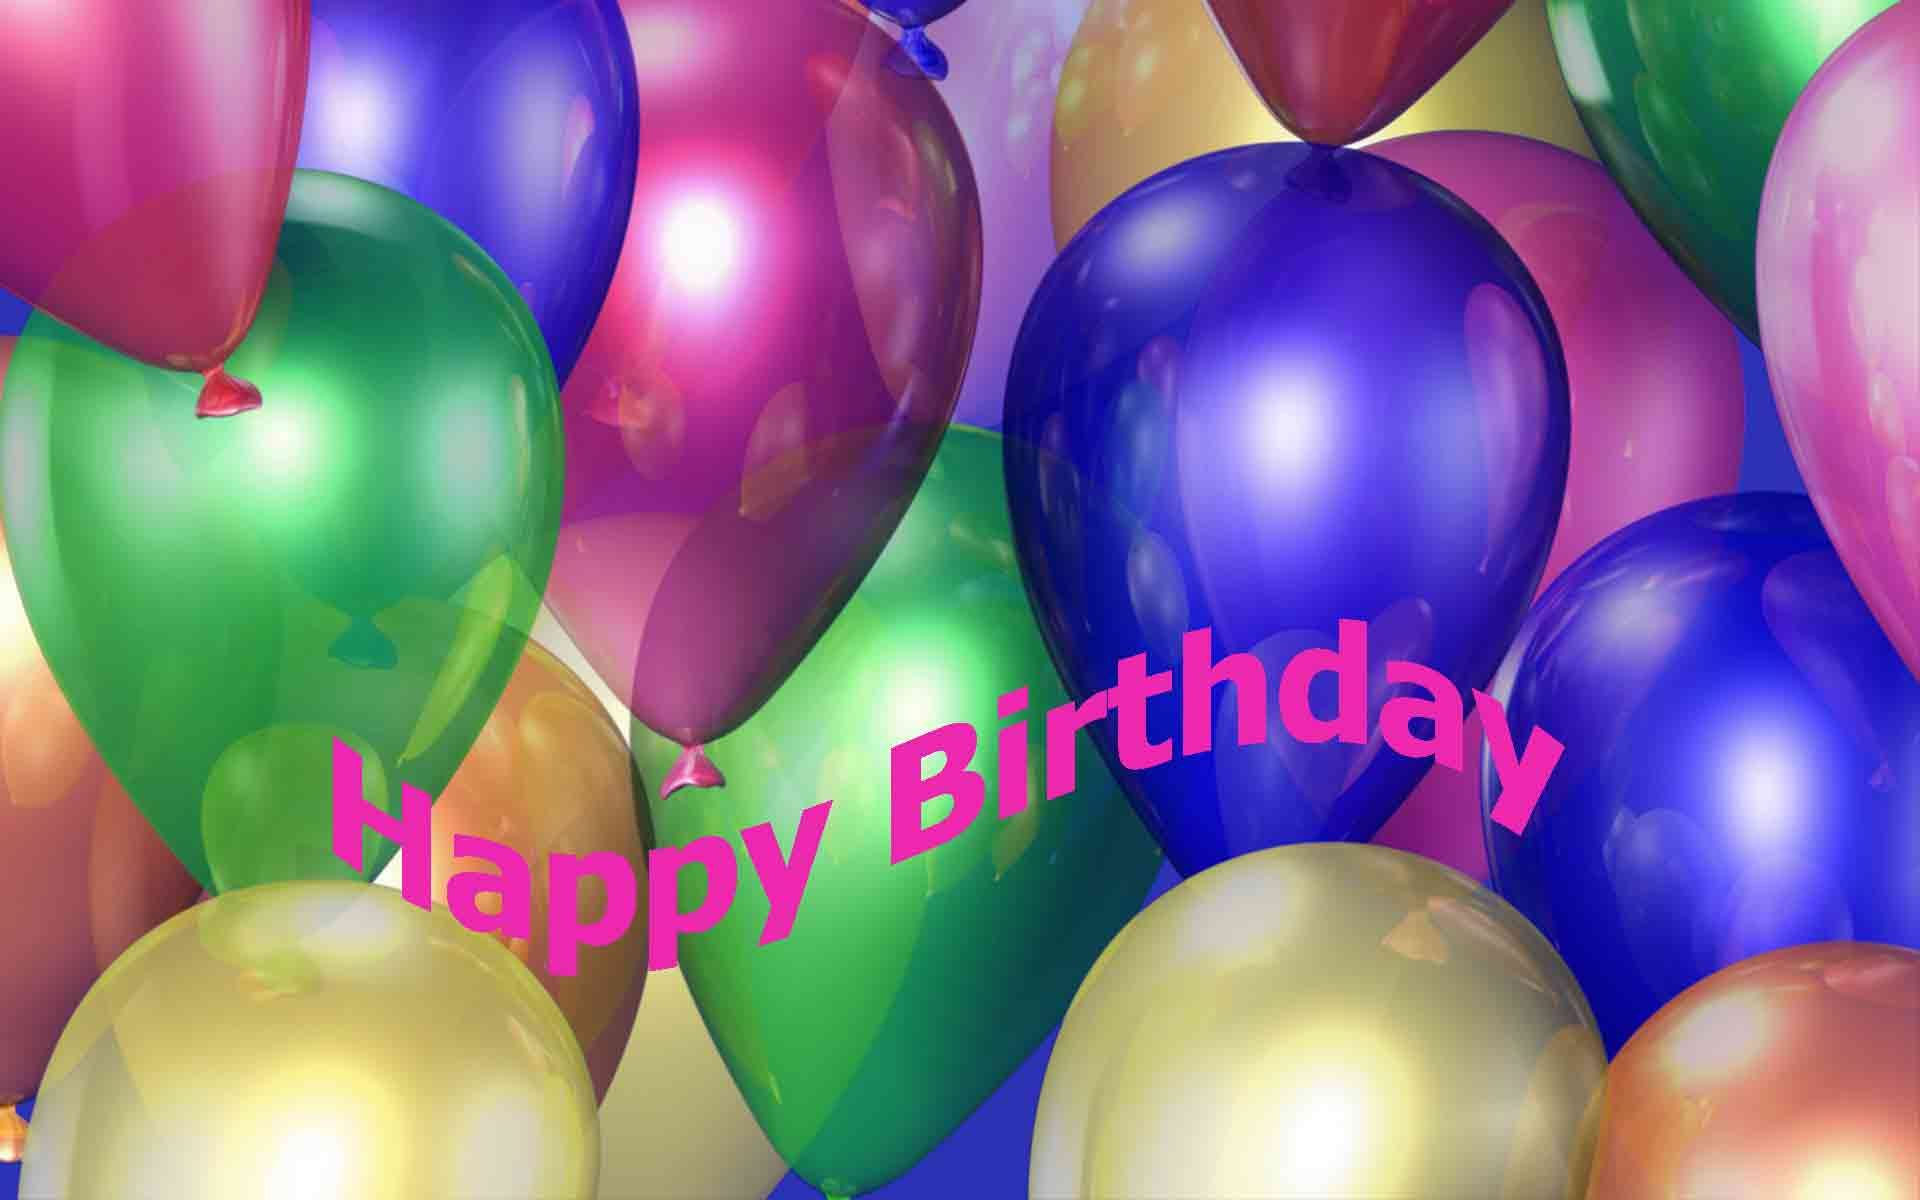 free happy birthday wallpaper for android ; happy-birthday-ballons-HD-wallpaper